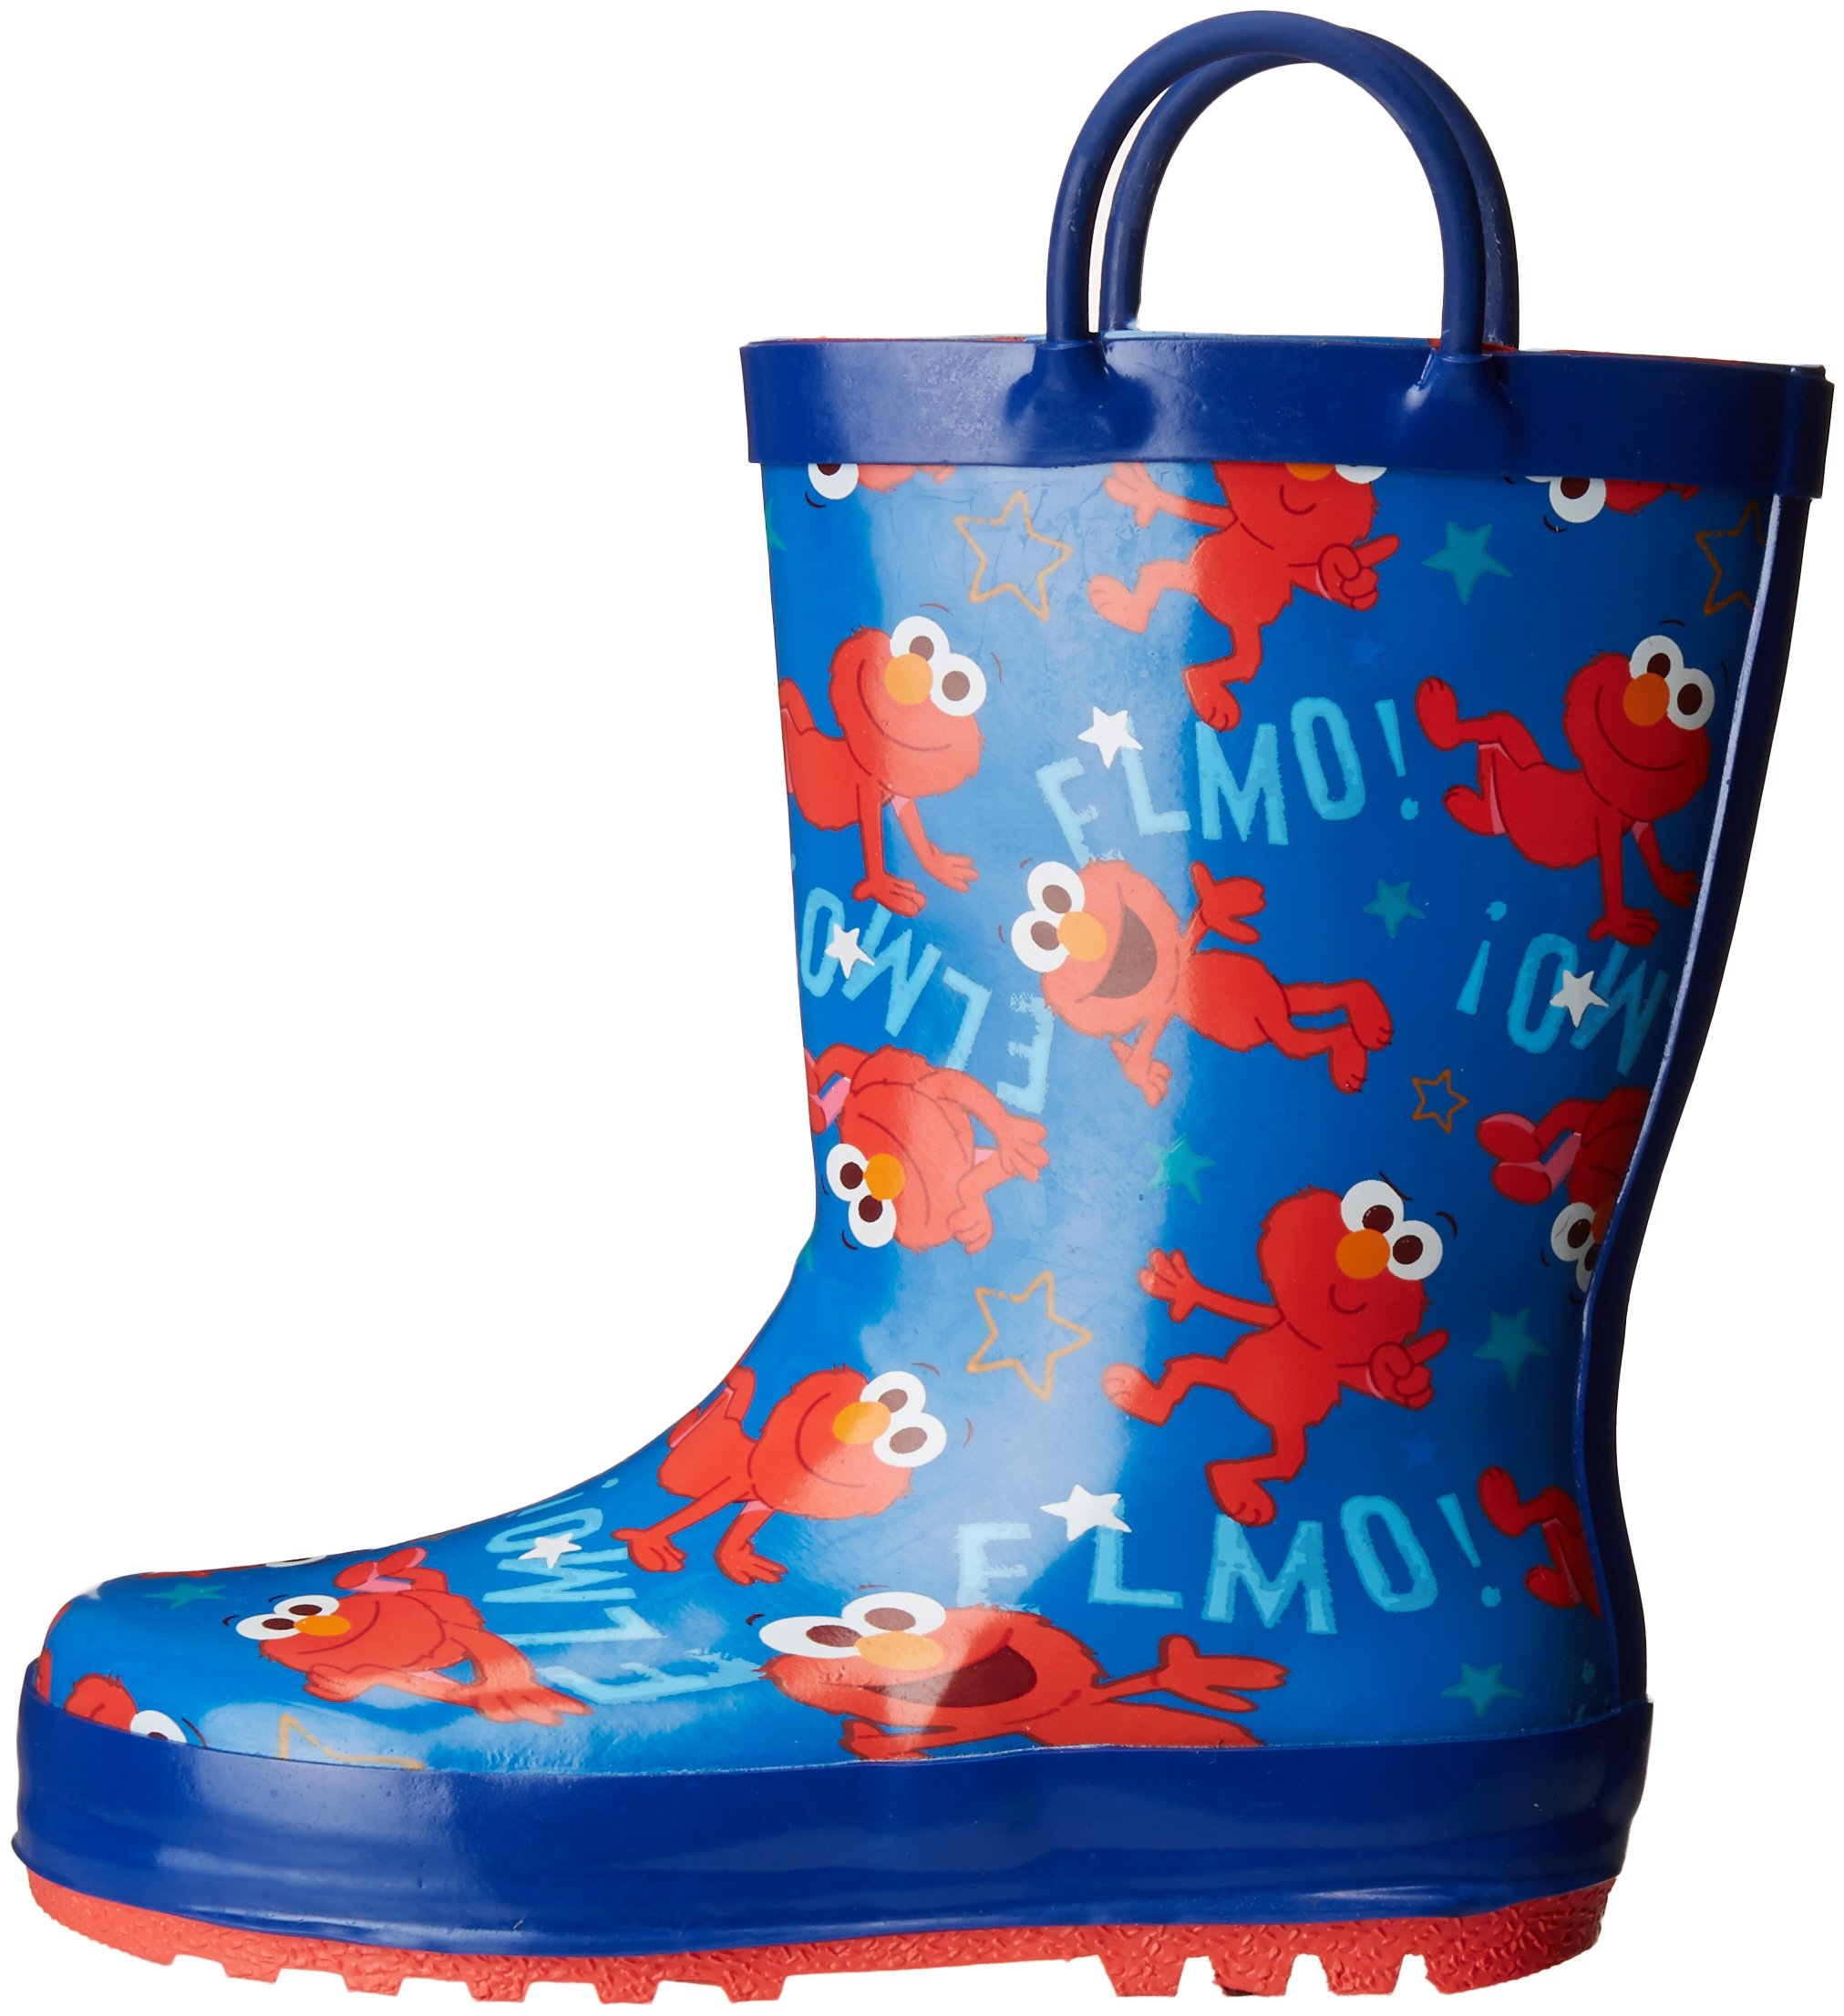 Sesame Street Boys' Kid's Character Licensed Rain Boot, Blue, Dual Shoe Size 7/8 Child US Toddler by Sesame Street (Image #5)